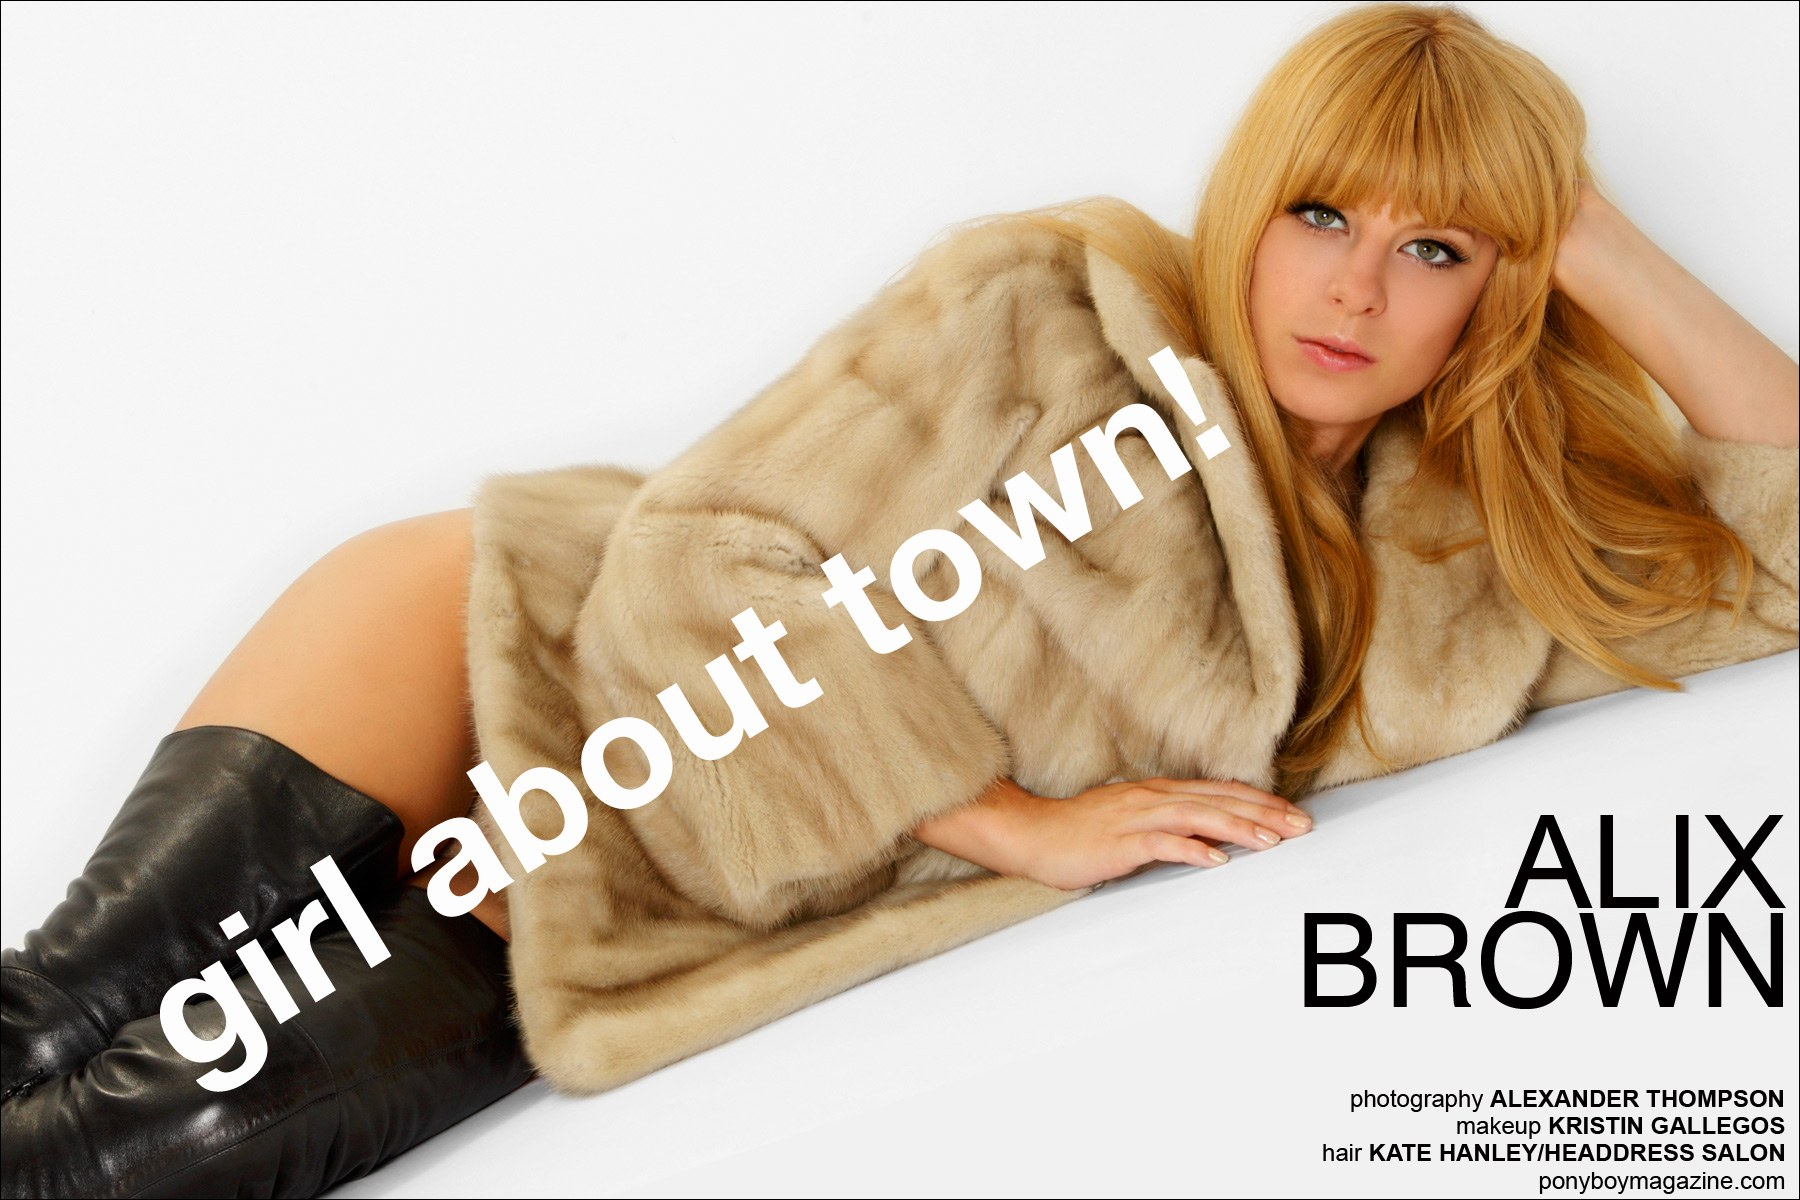 """Girl About Town!"", opening spread of Alix Brown feature for Ponyboy Magazine in New York City. Photographed by Alexander Thompson."